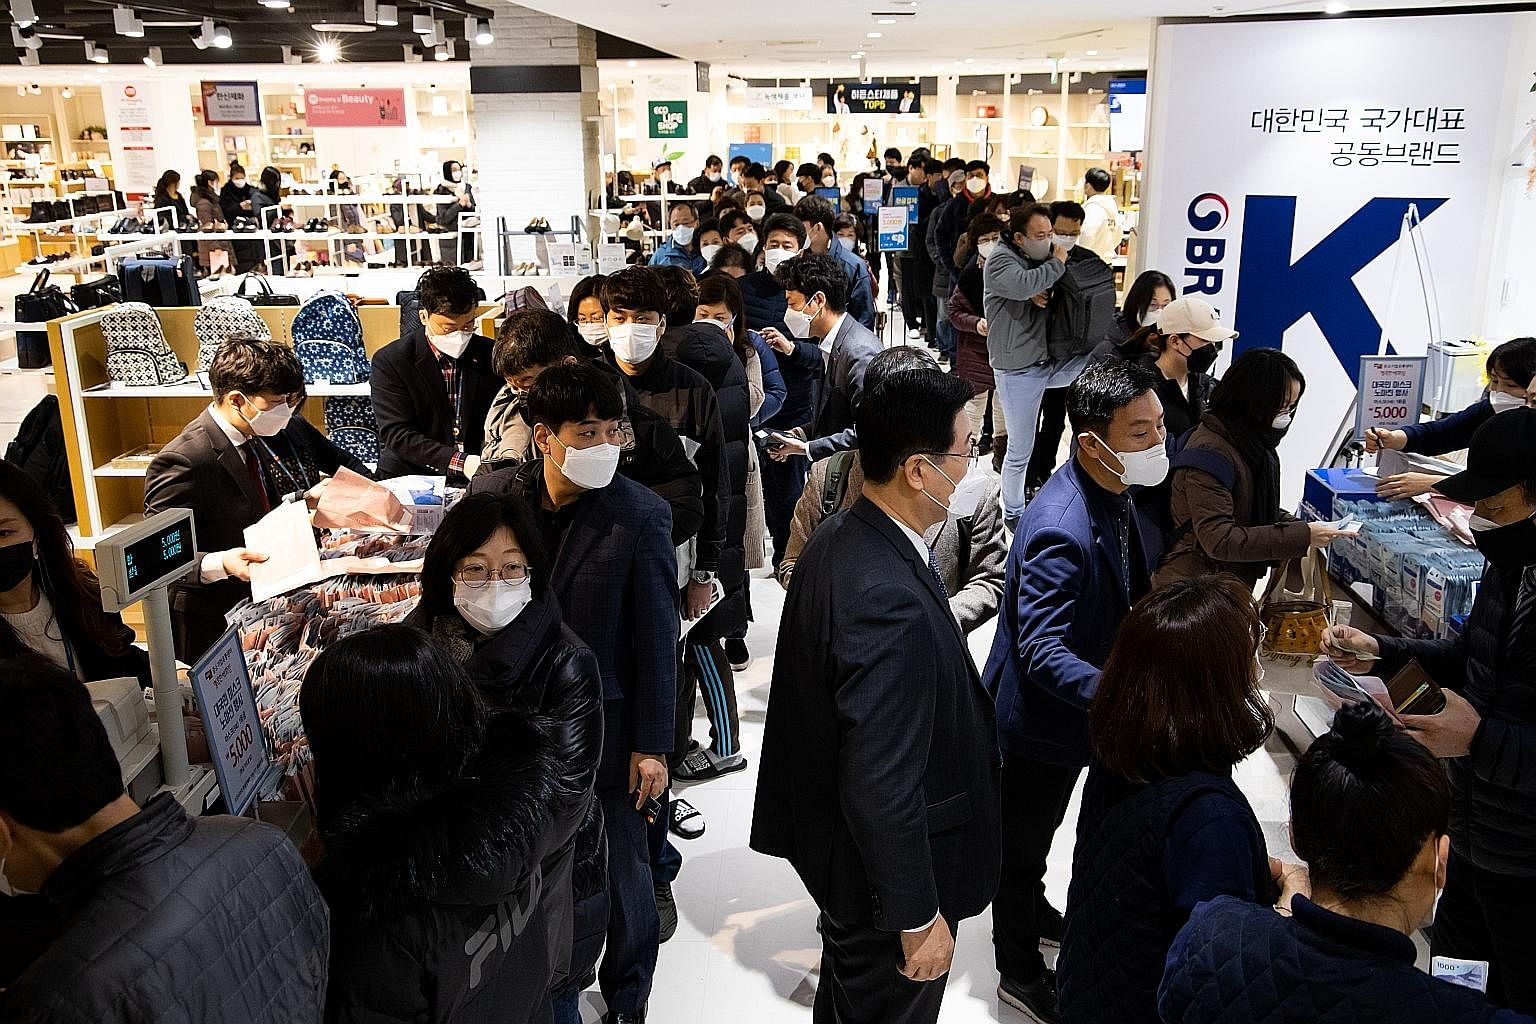 People queueing to buy masks supplied by the government at a department store in the Mokdong district of Seoul yesterday. Workers in protective suits spraying disinfectant on a store window in Munjeong-dong Rodeo Street in the Songpa district of Seou